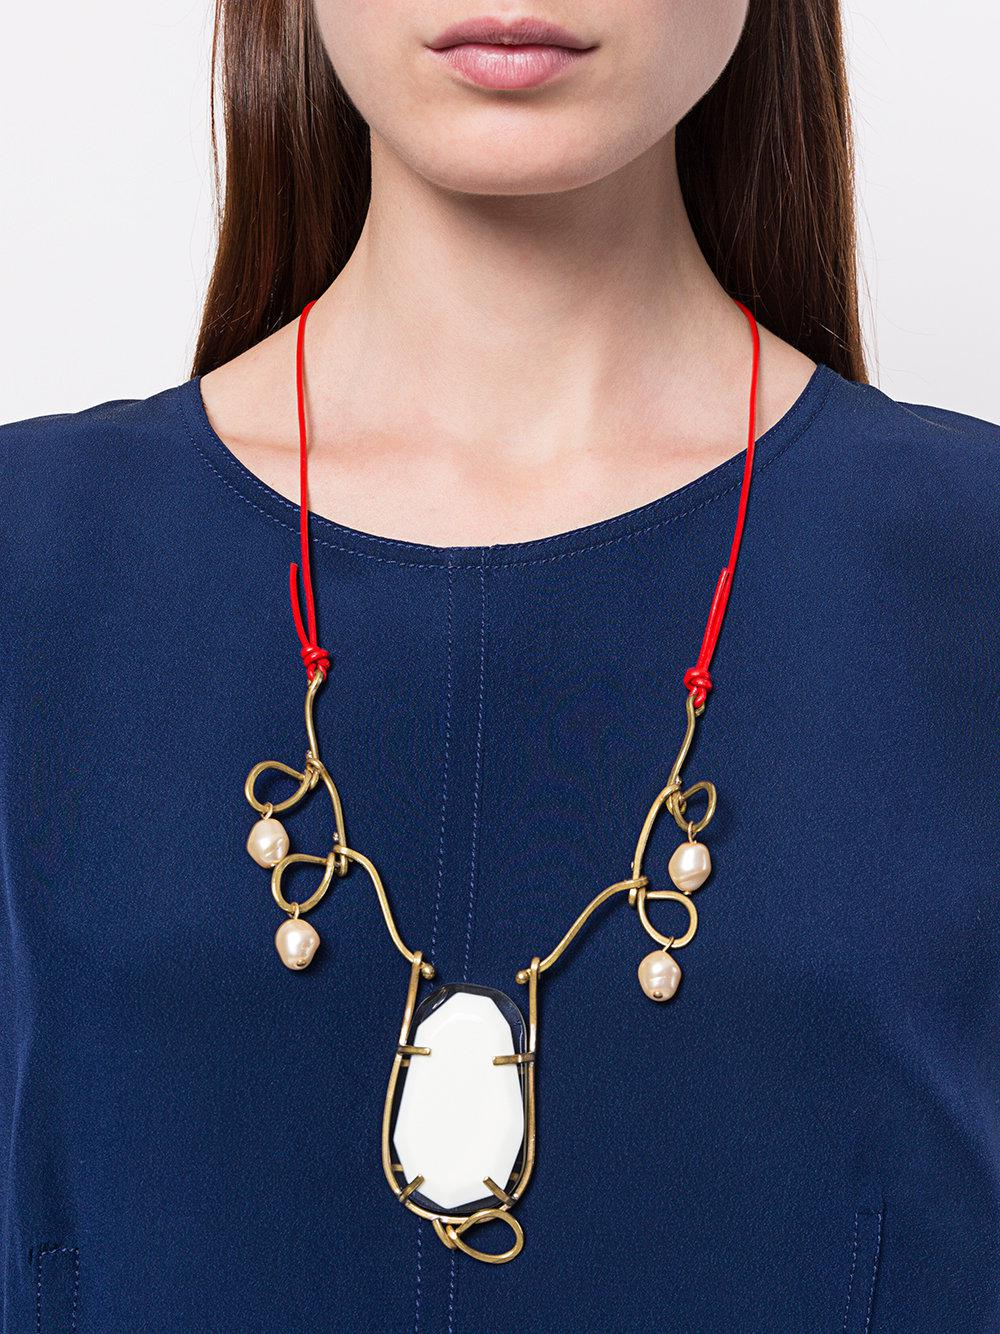 Marni Twisted Wire Necklace in Metallic